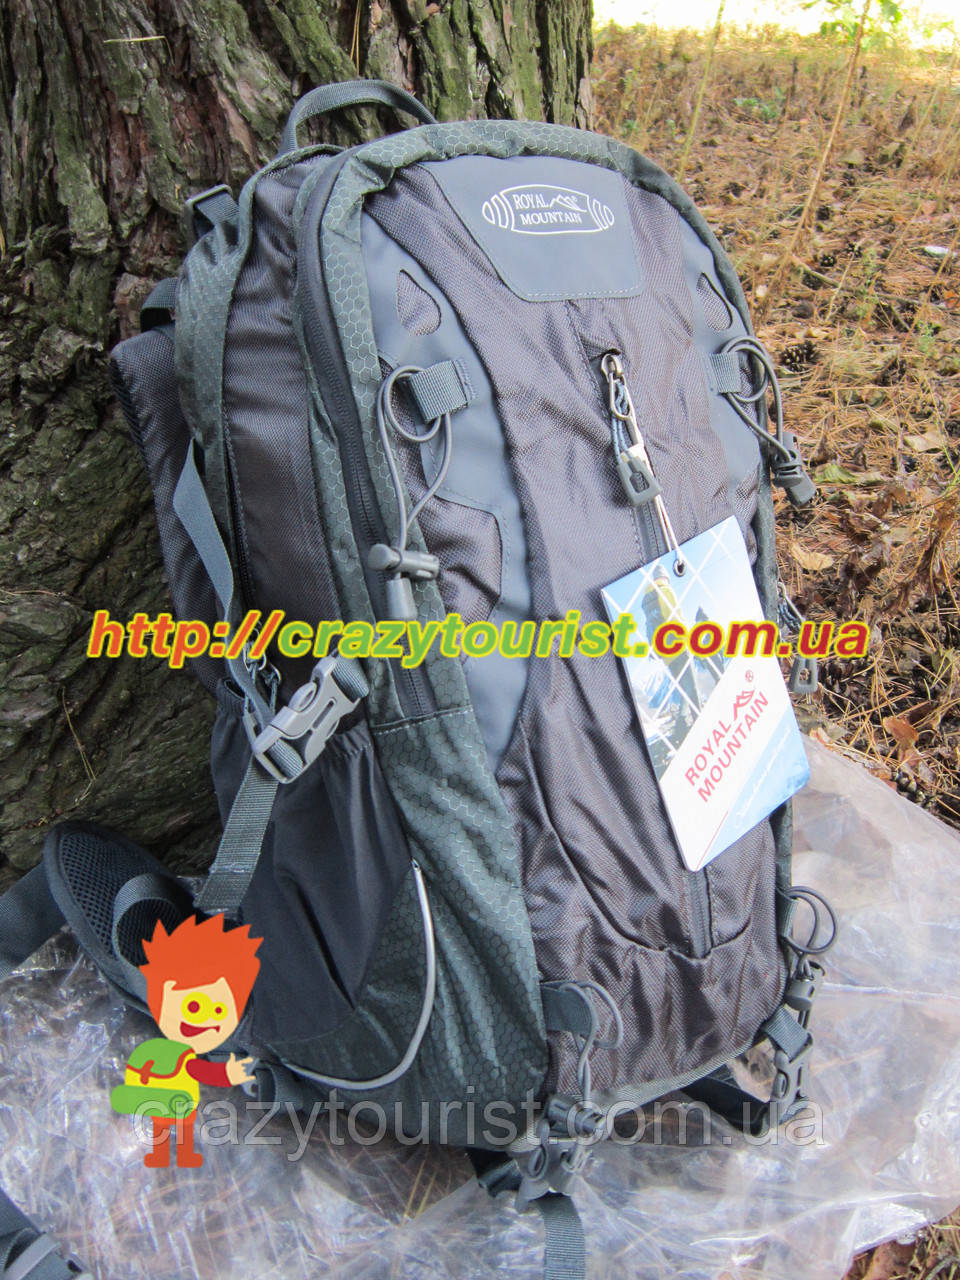 "Рюкзак Royal Mountain 1451 40 L Black - Интернет-магазин ""Crazy Tourist"" в Днепре"